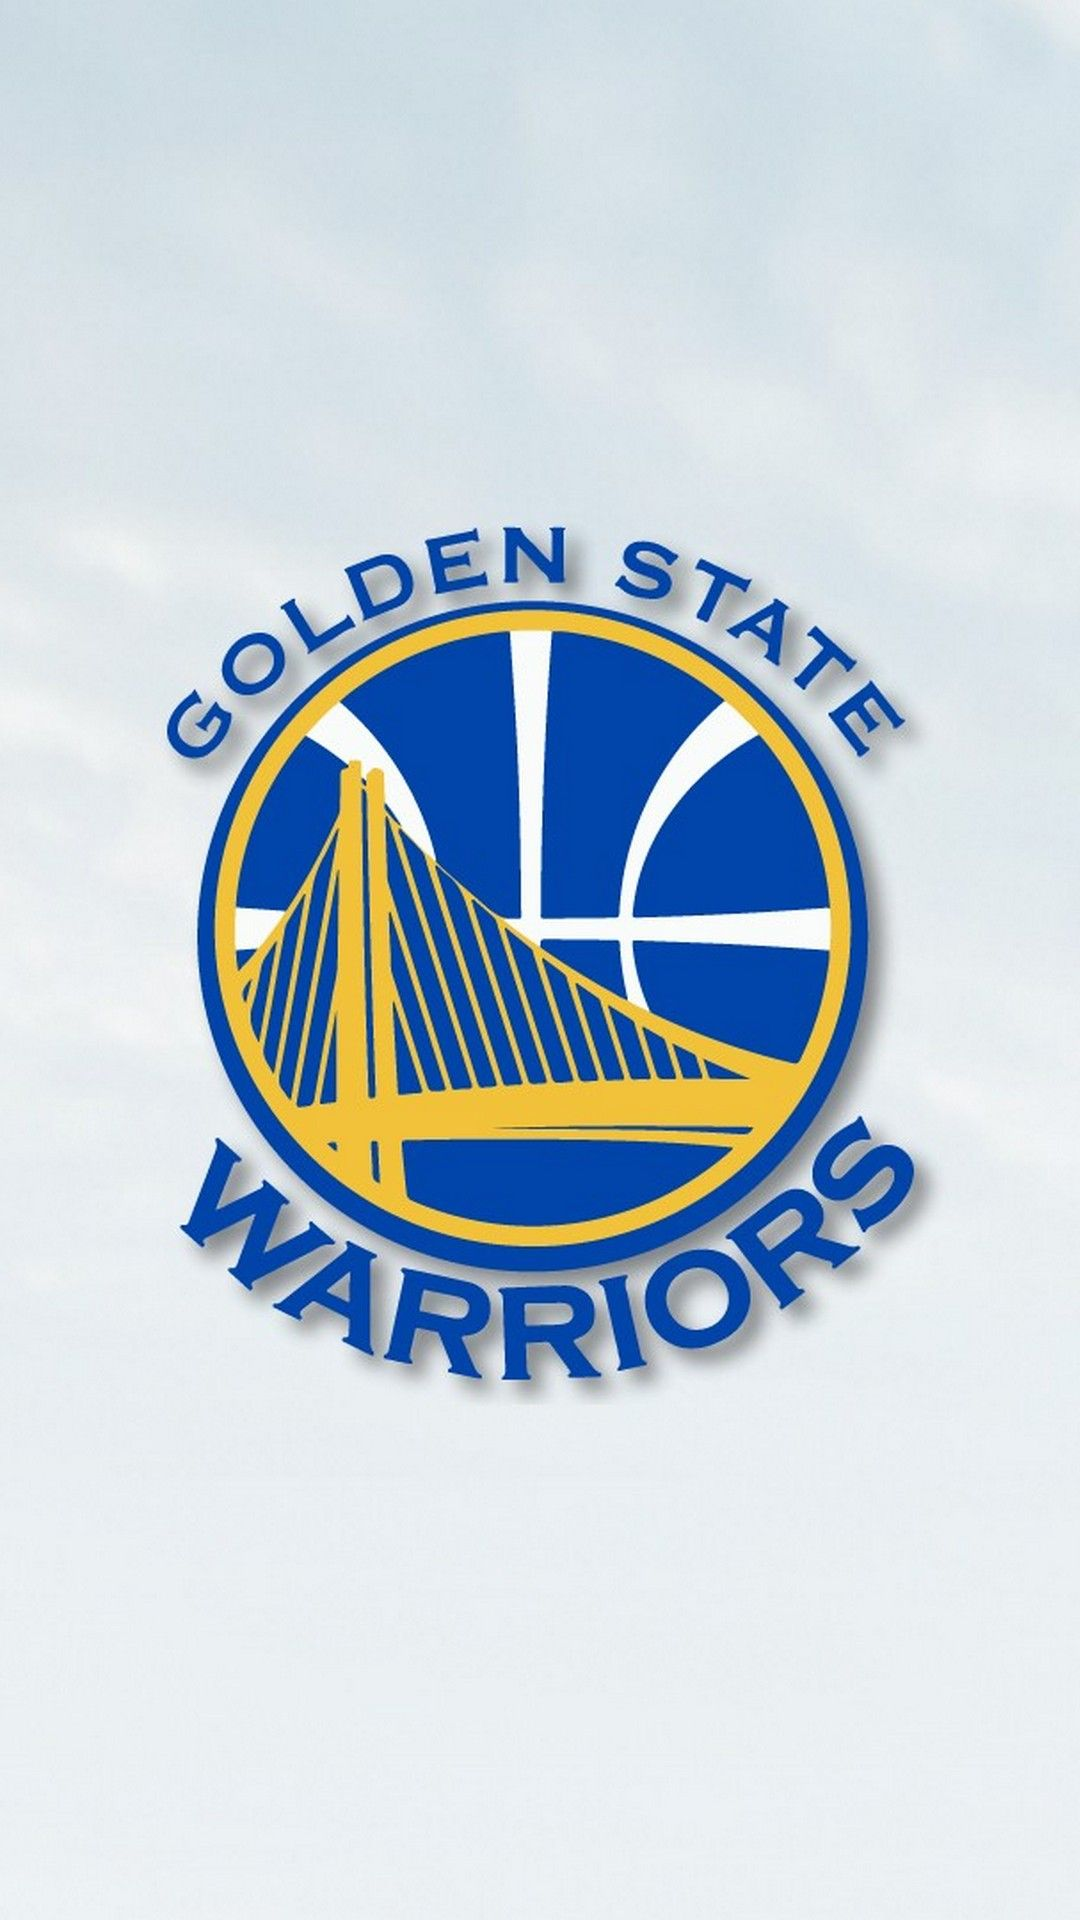 Golden State Warriors Iphone X Wallpaper Best Wallpaper Hd Golden State Warriors Wallpaper Golden State Warriors Warriors Wallpaper